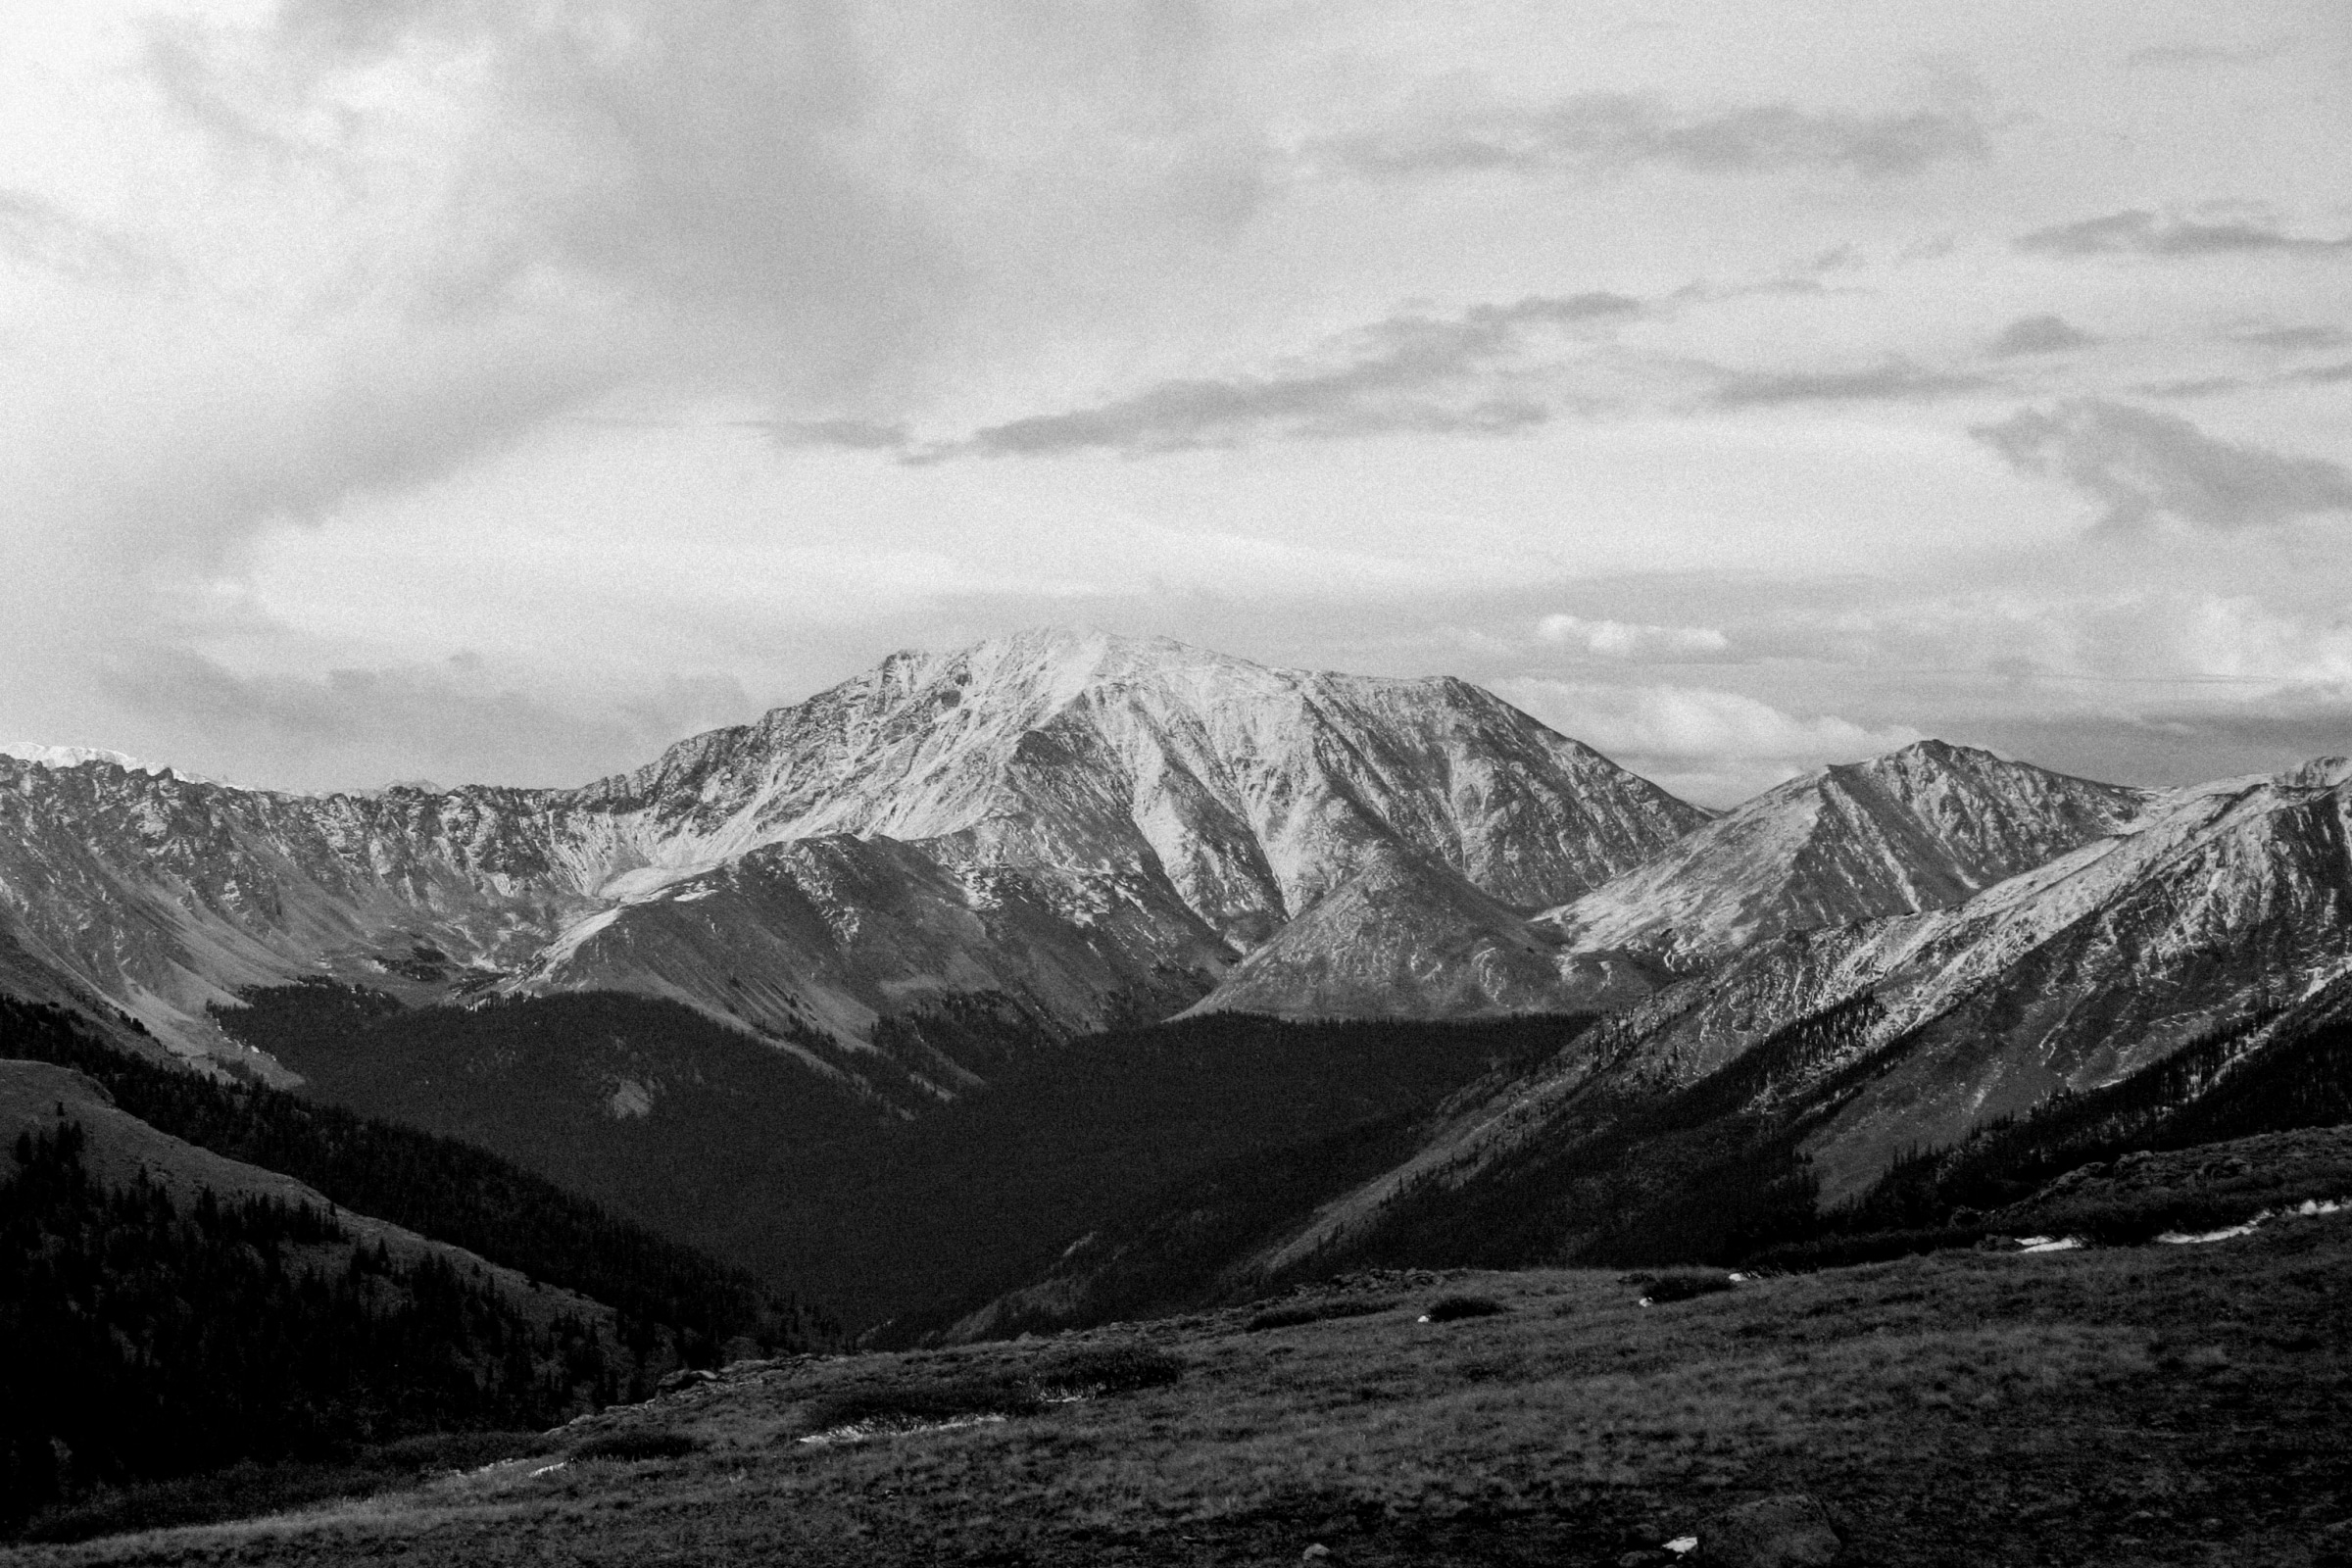 Independence-Pass-Colorado-black-and-white-fine-art-photography-by-Studio-L-photographer-Laura-Schneider-_8378